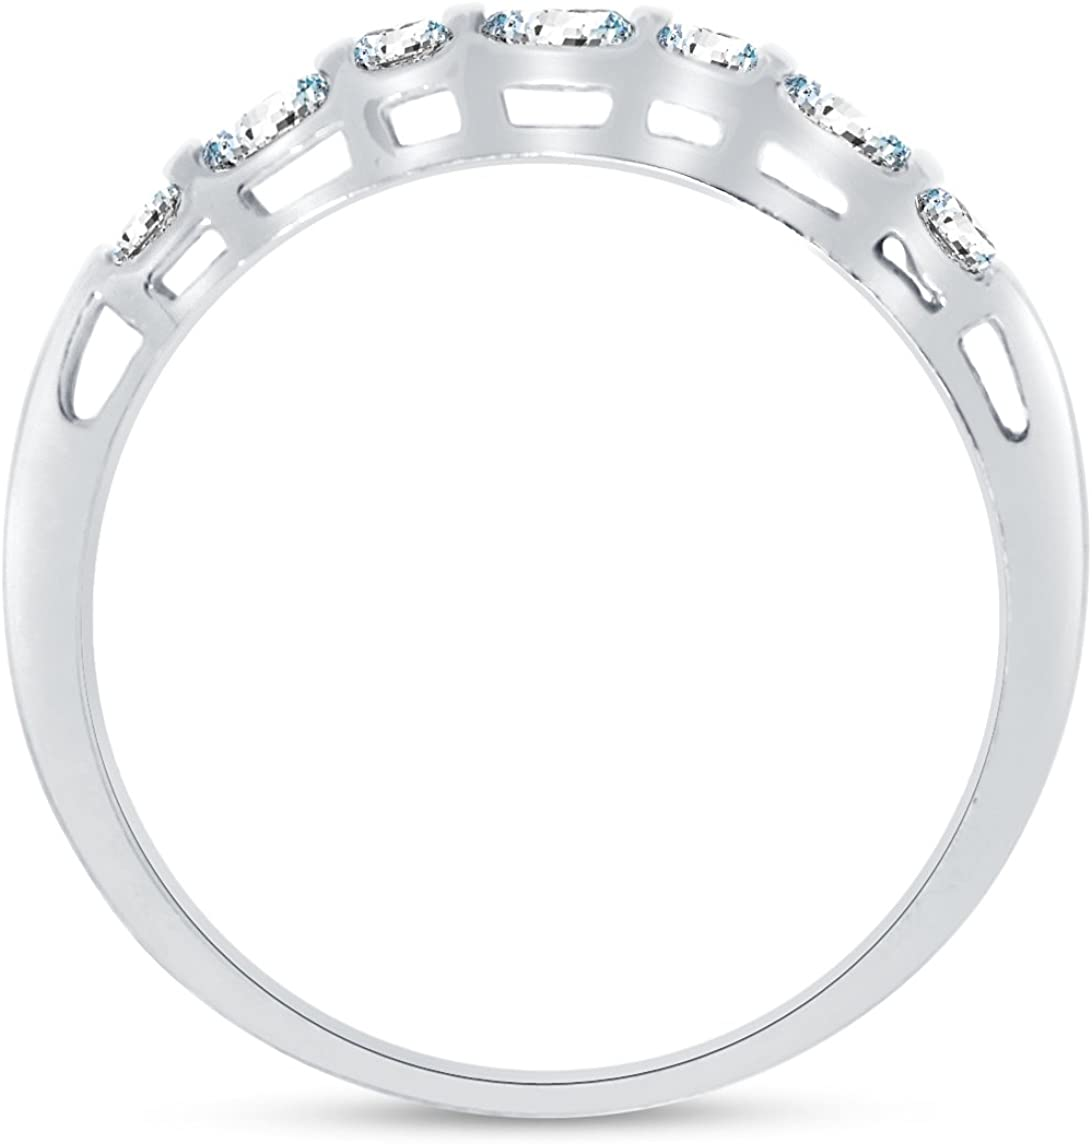 Bishilin Stackable Ring for Women Emerald /& Round Cut White Cubic Zirconia Size 10.5